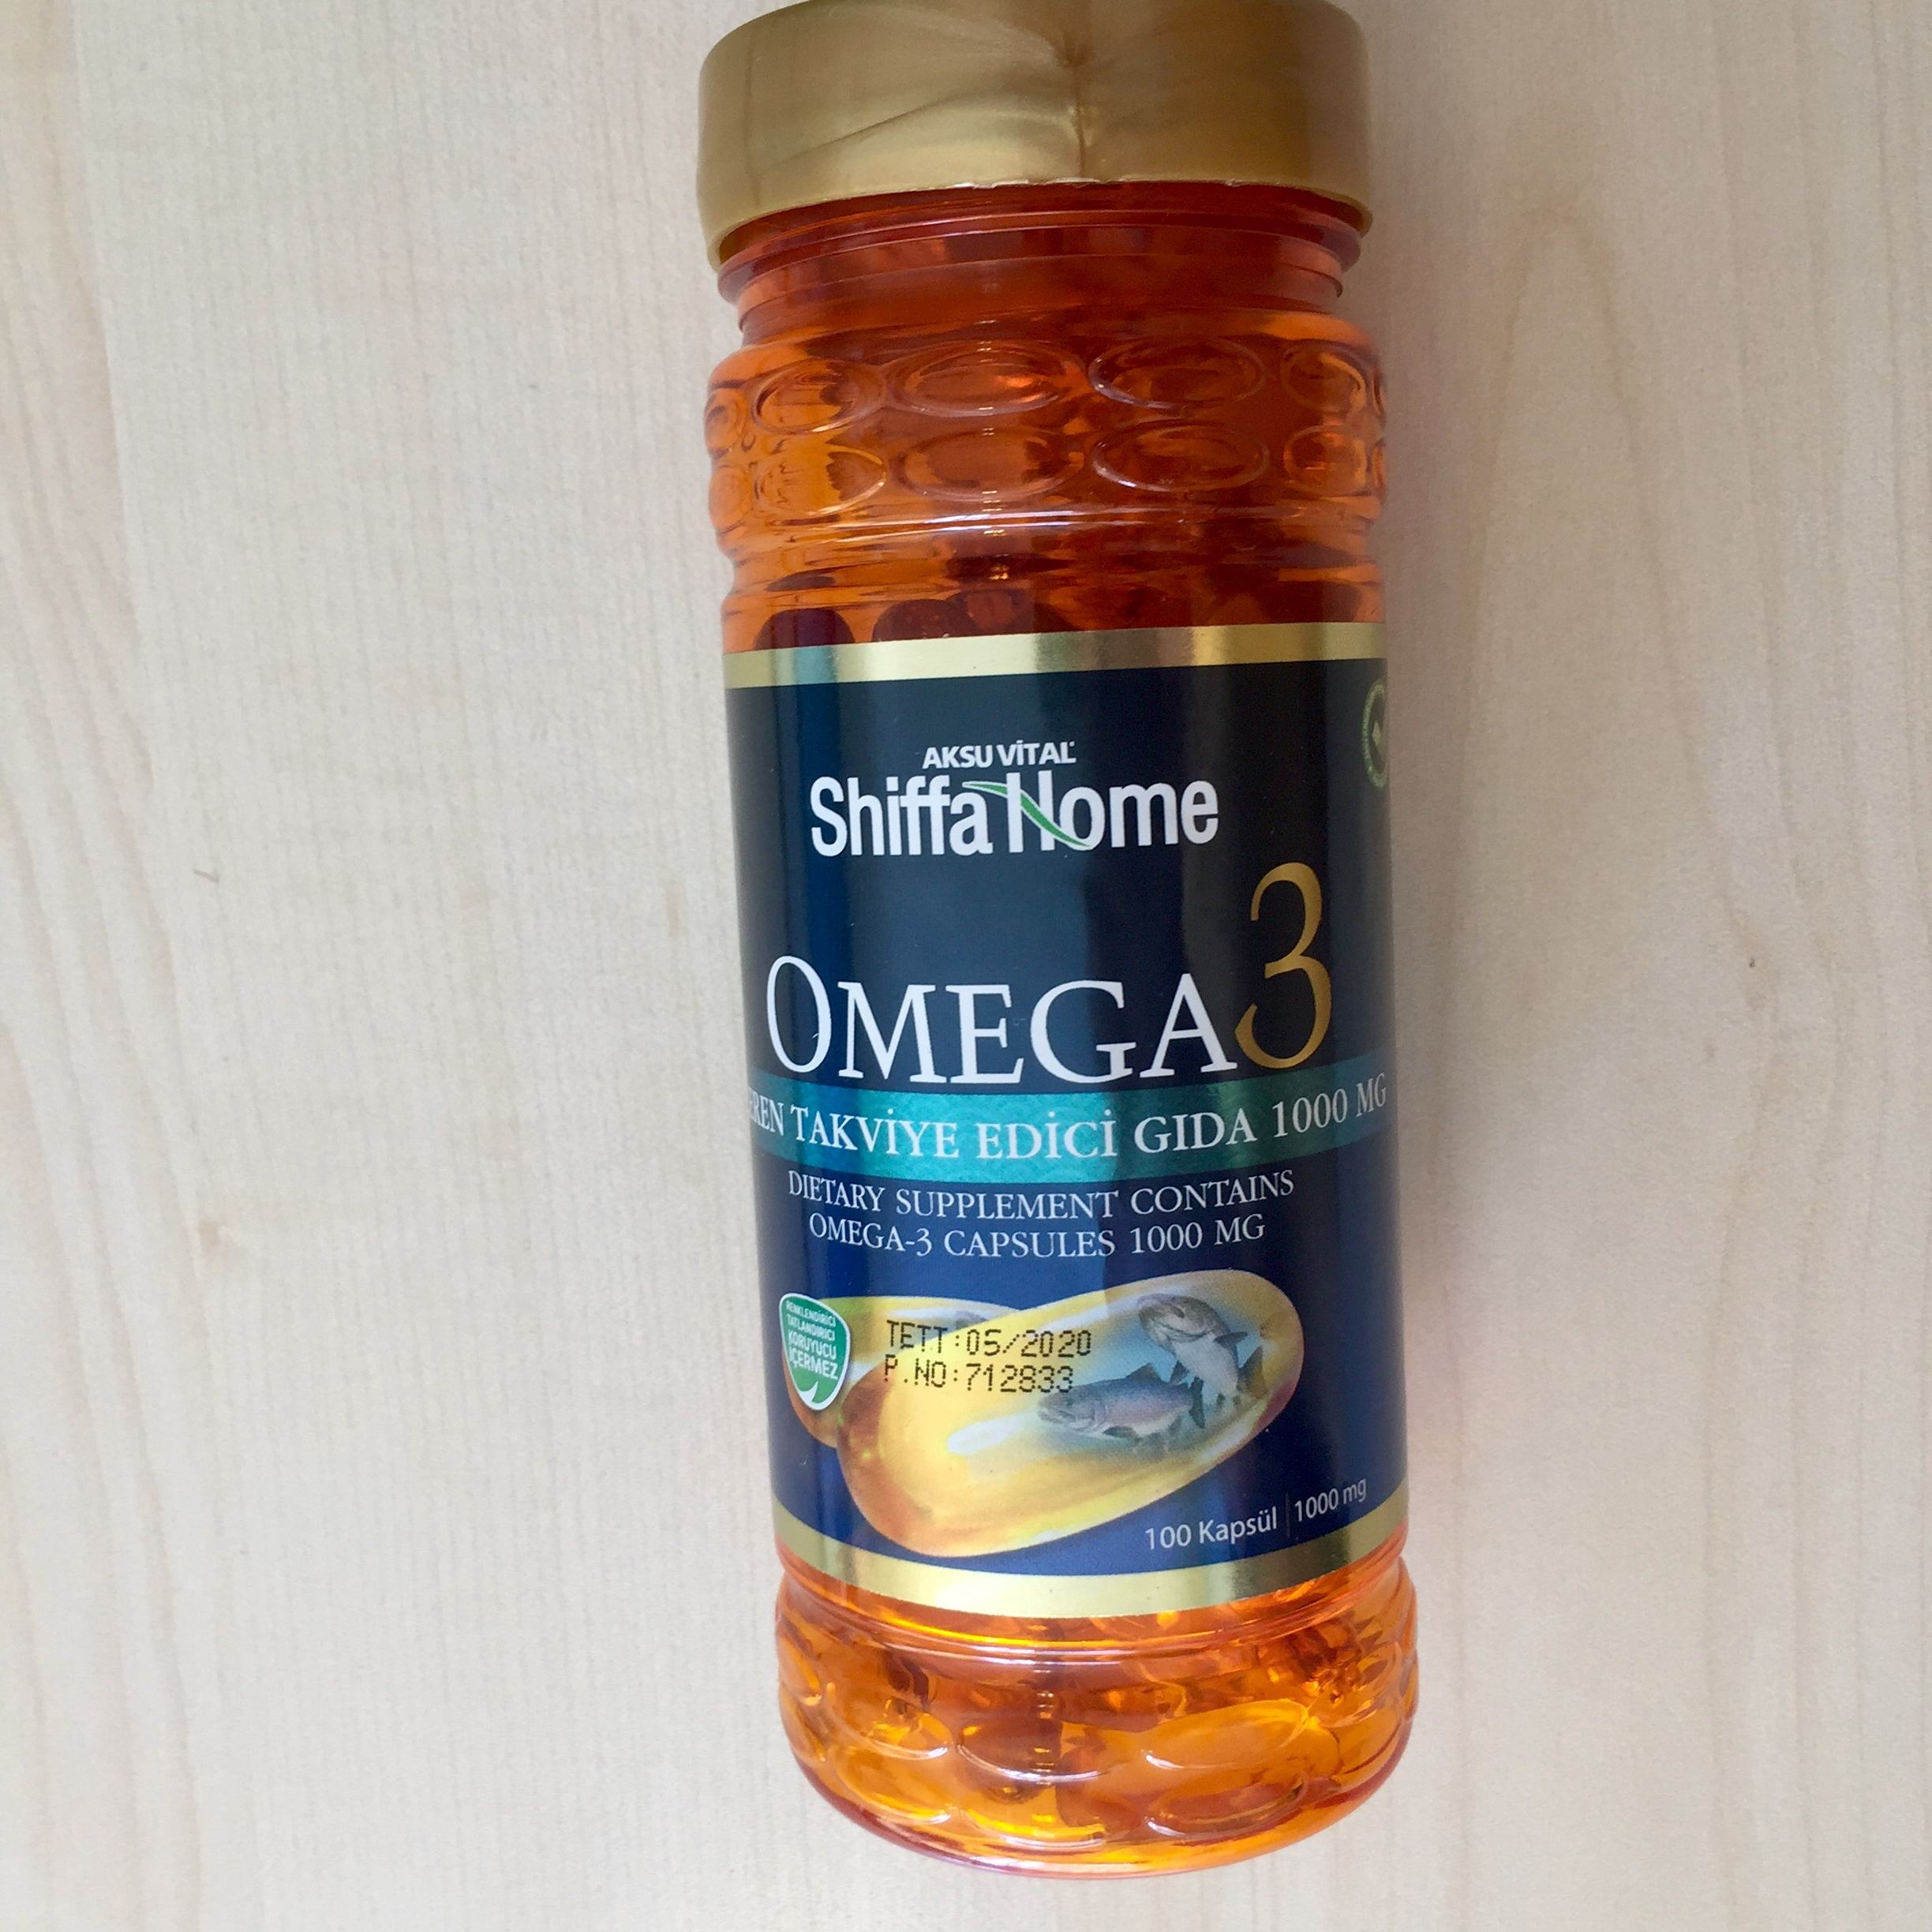 Omega fish oil capsules weight gain supplements for women